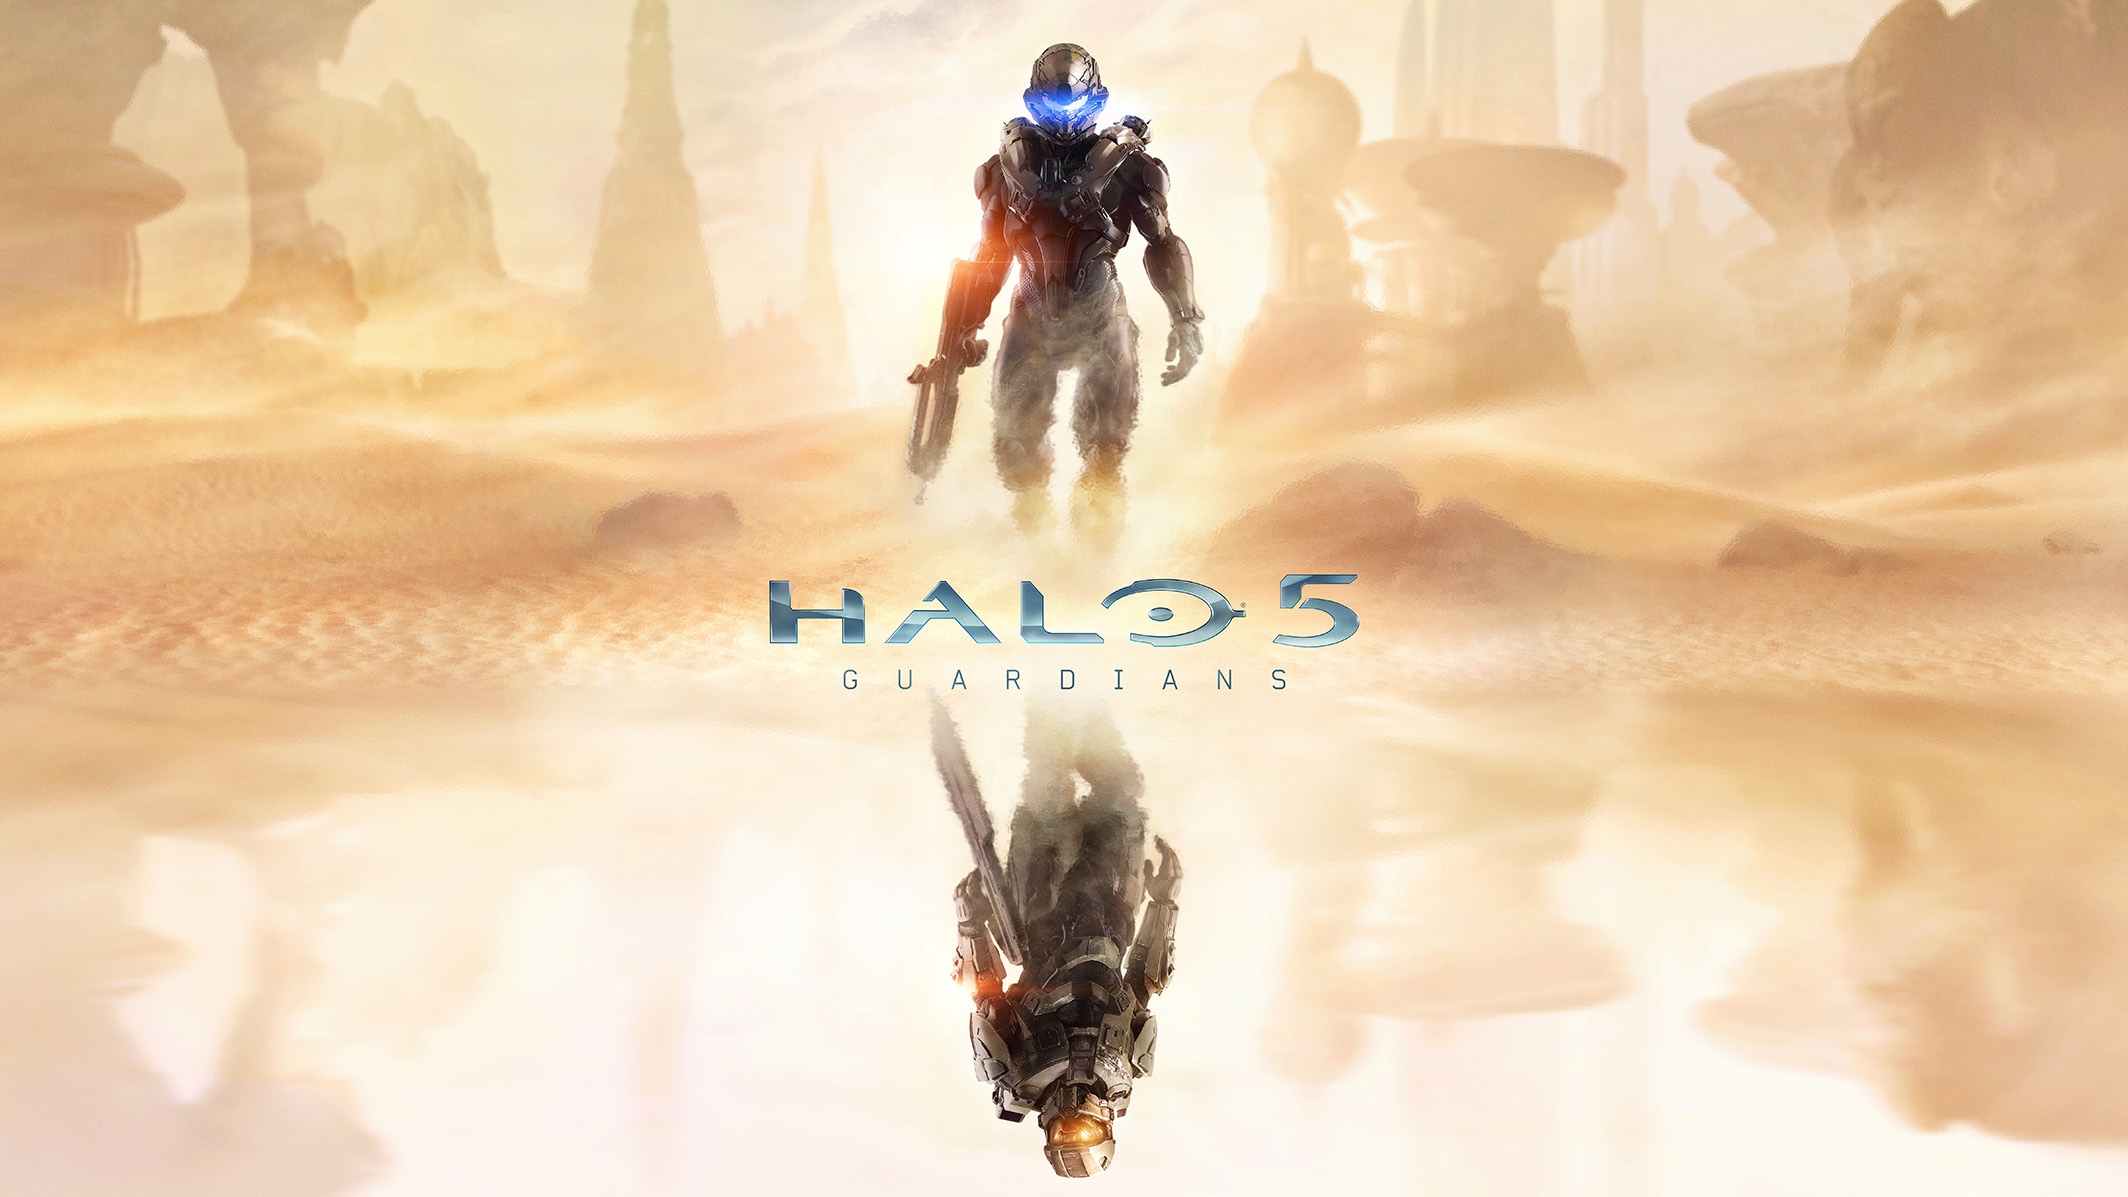 What are Microsoft not telling us about Halo 5: Guardians?